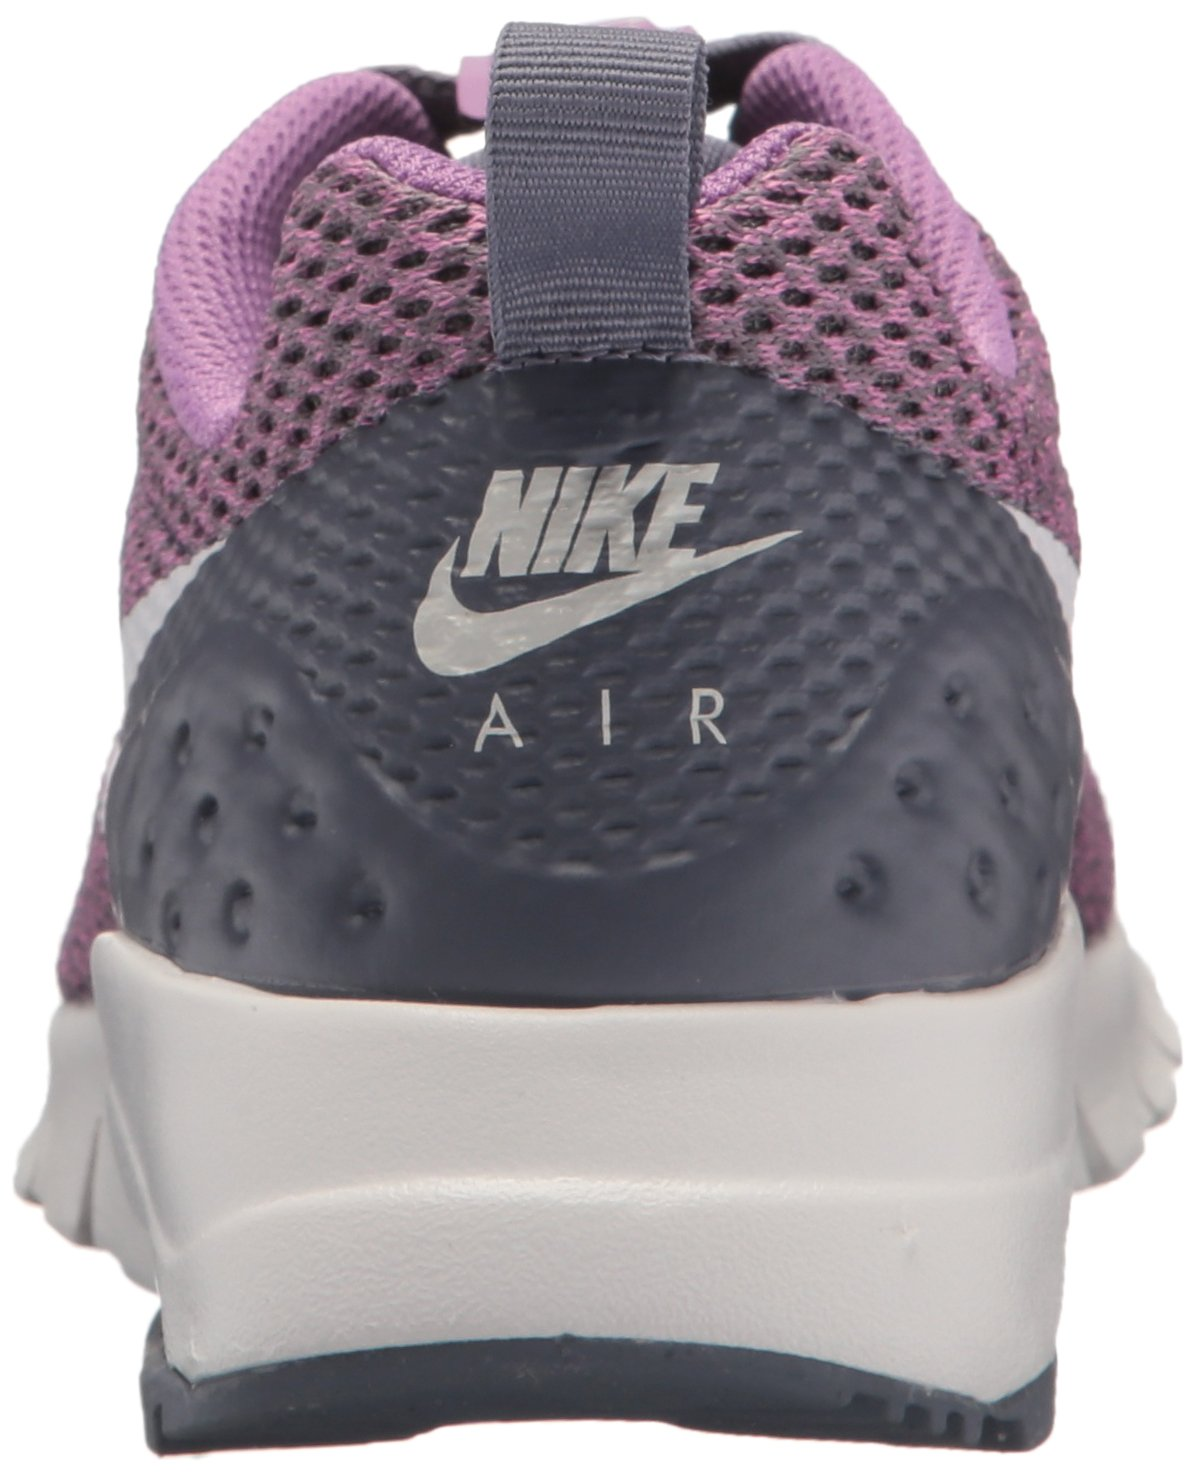 NIKE Women's Air Max B07192TFM9 Motion Lw Running Shoe B07192TFM9 Max 12 B(M) US|Light Carbon/Vast Grey/Dark Orchid f3a0df